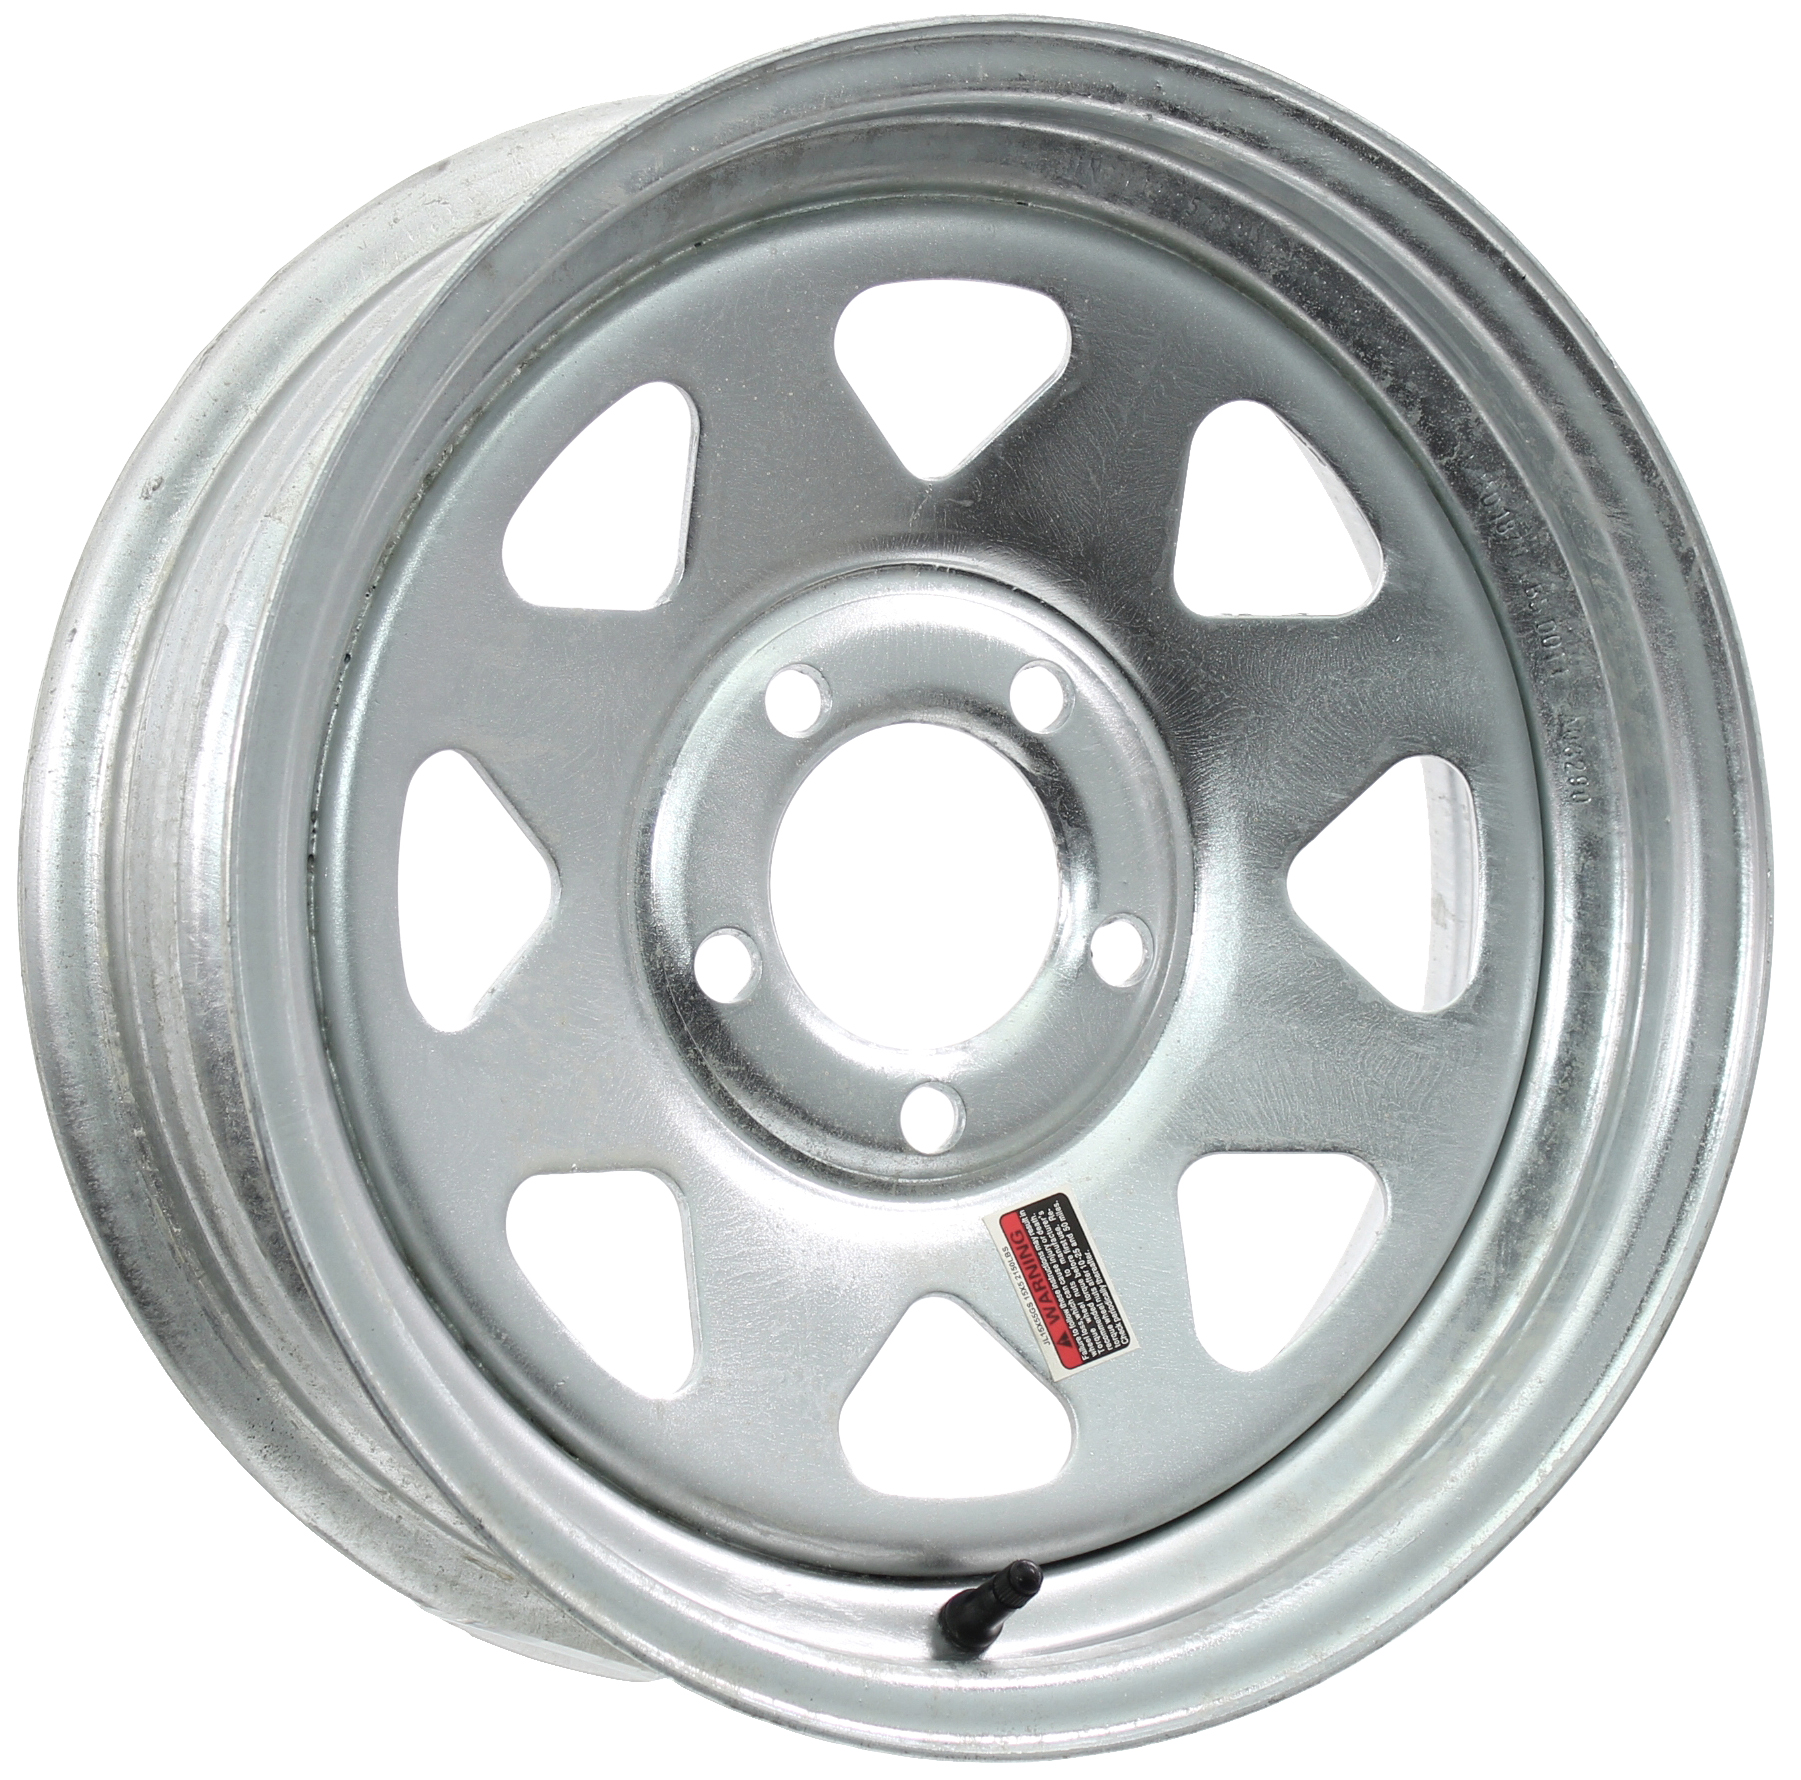 15x5 5-Lug Galvanized Spoke Steel Trailer Wheel Image